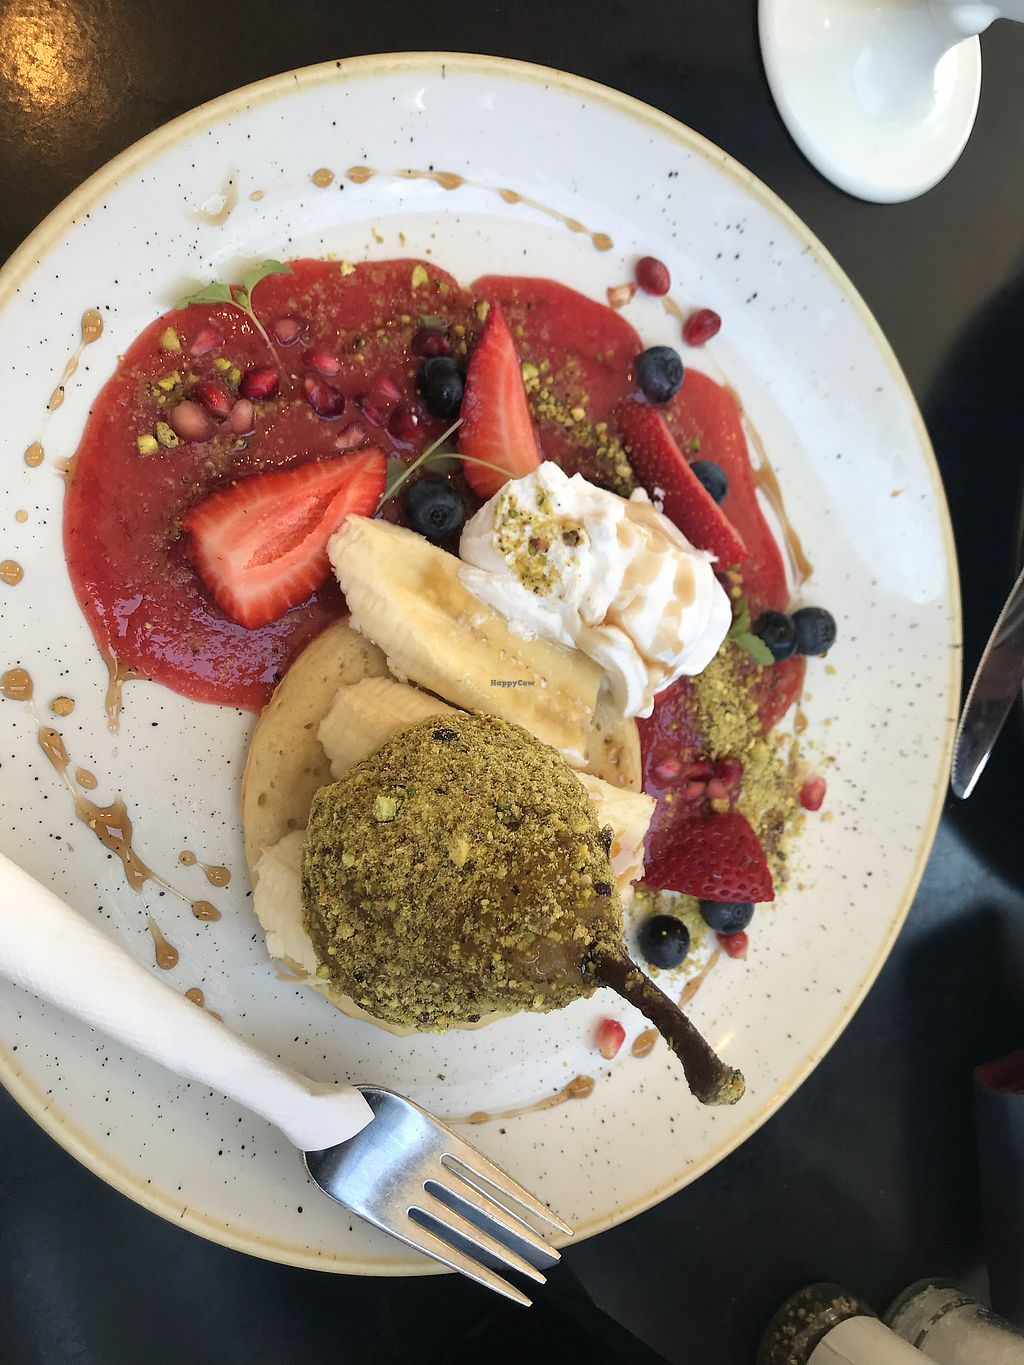 """Photo of Deedot Coffee  by <a href=""""/members/profile/NirvanaRoseWilliams"""">NirvanaRoseWilliams</a> <br/>Crumpet with pear <br/> January 9, 2018  - <a href='/contact/abuse/image/107334/344838'>Report</a>"""